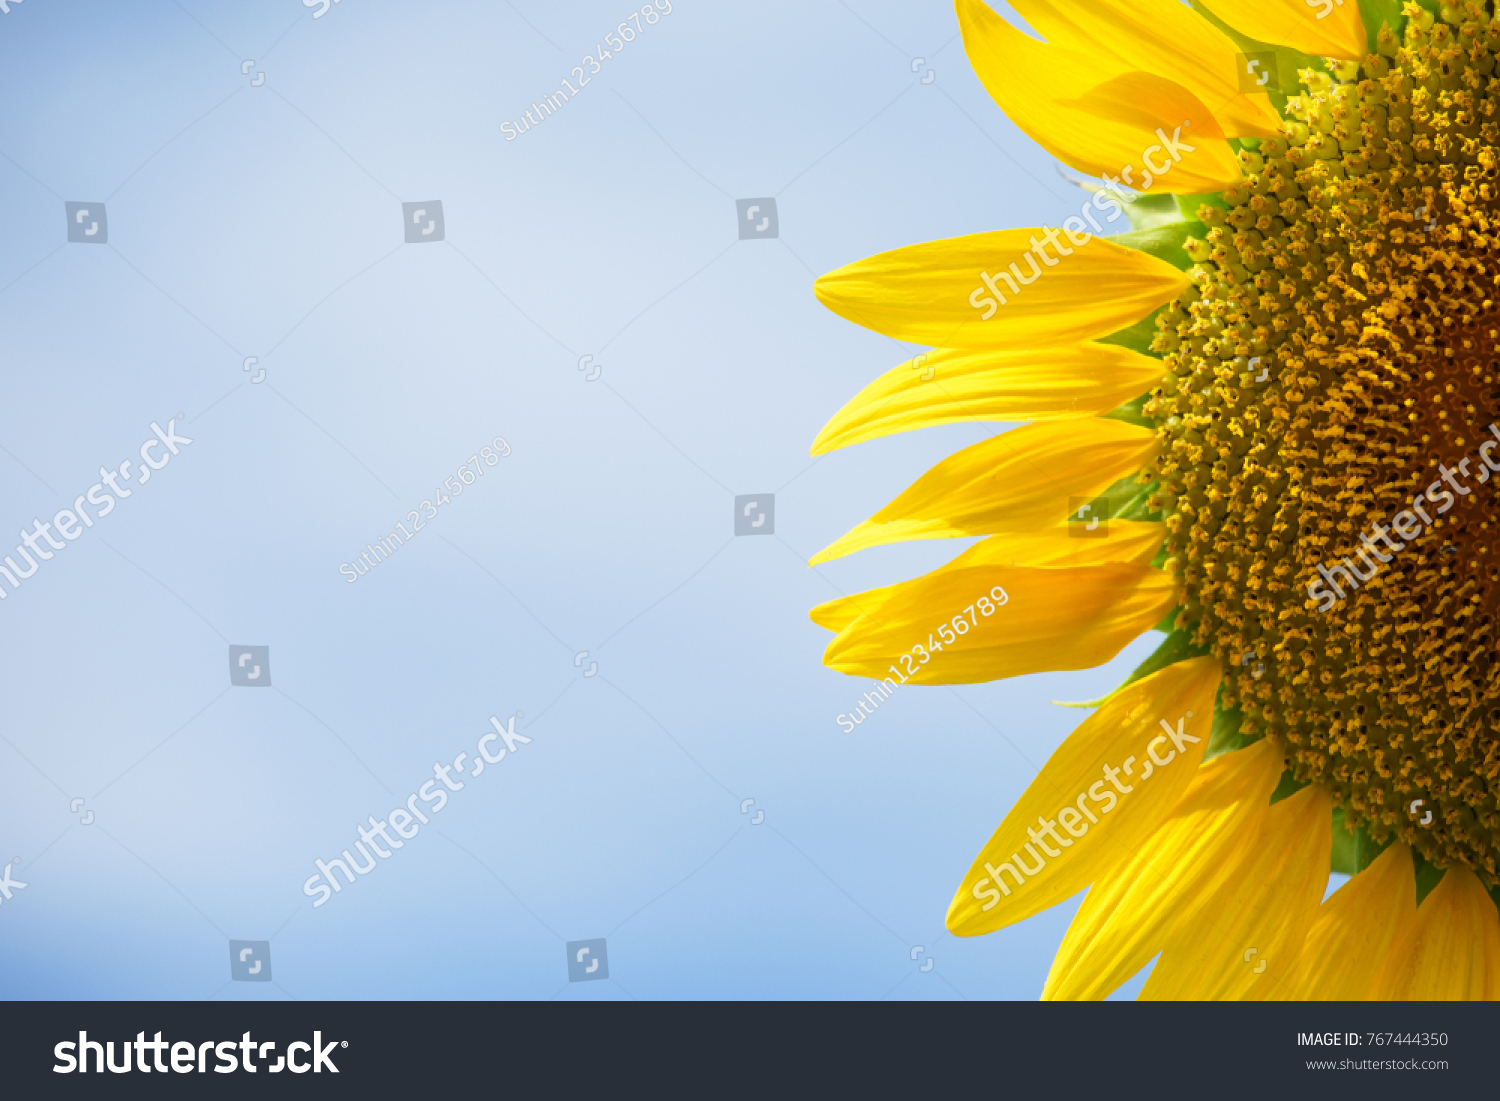 Beautiful sunflower with blurred background #767444350